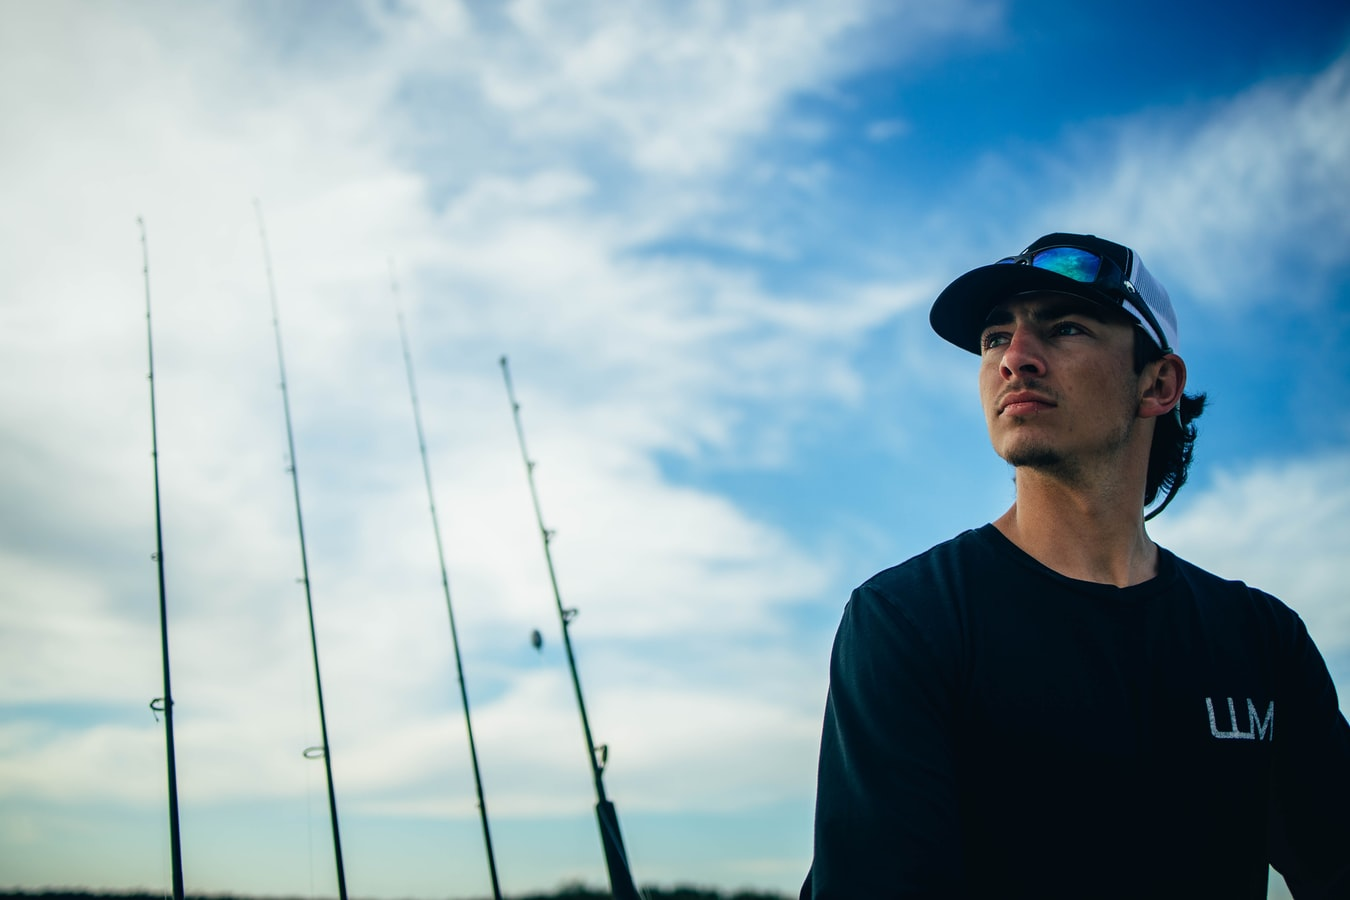 guy with fishing poles